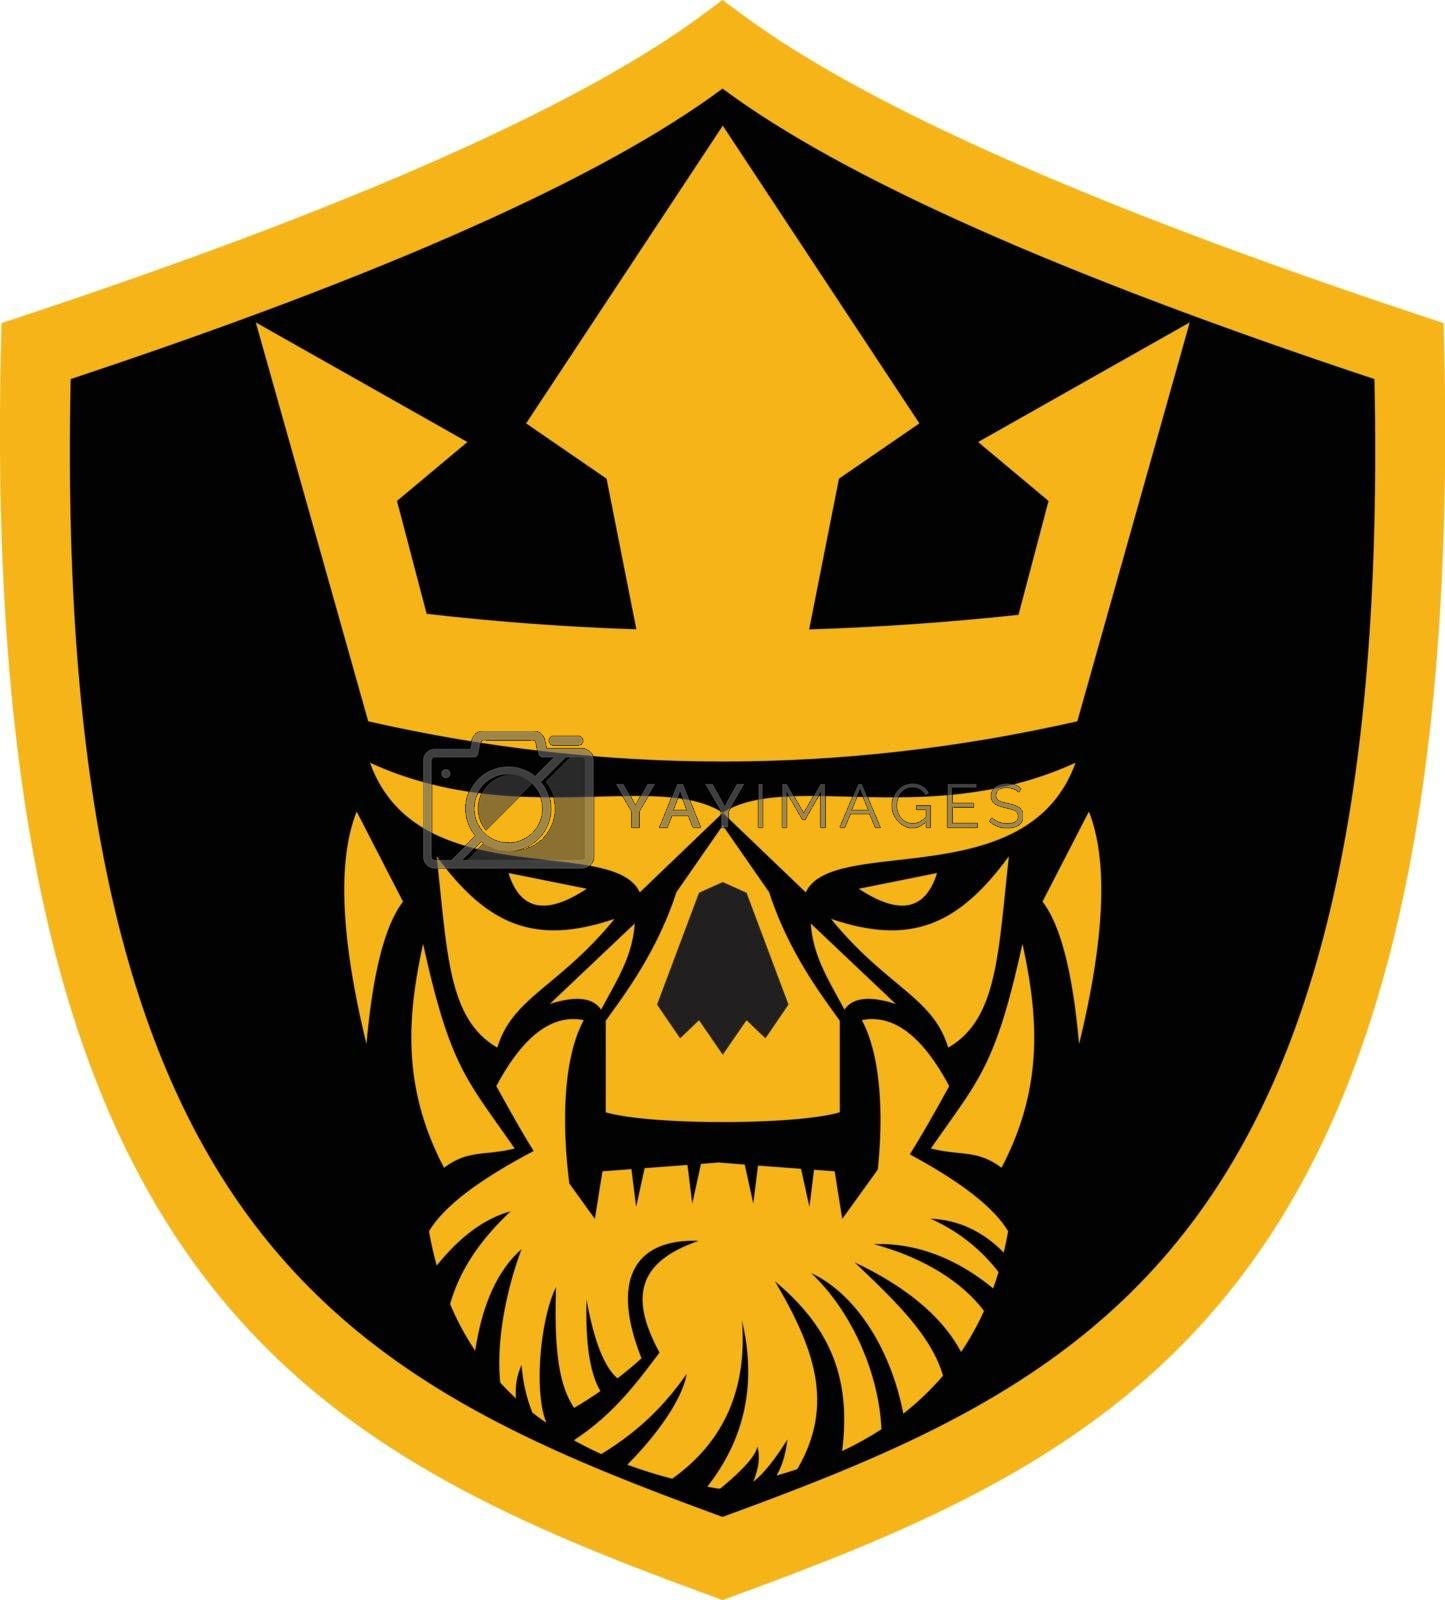 Icon style illustration of skull of Neptune viewed from front set inside crest shield on isolated background.